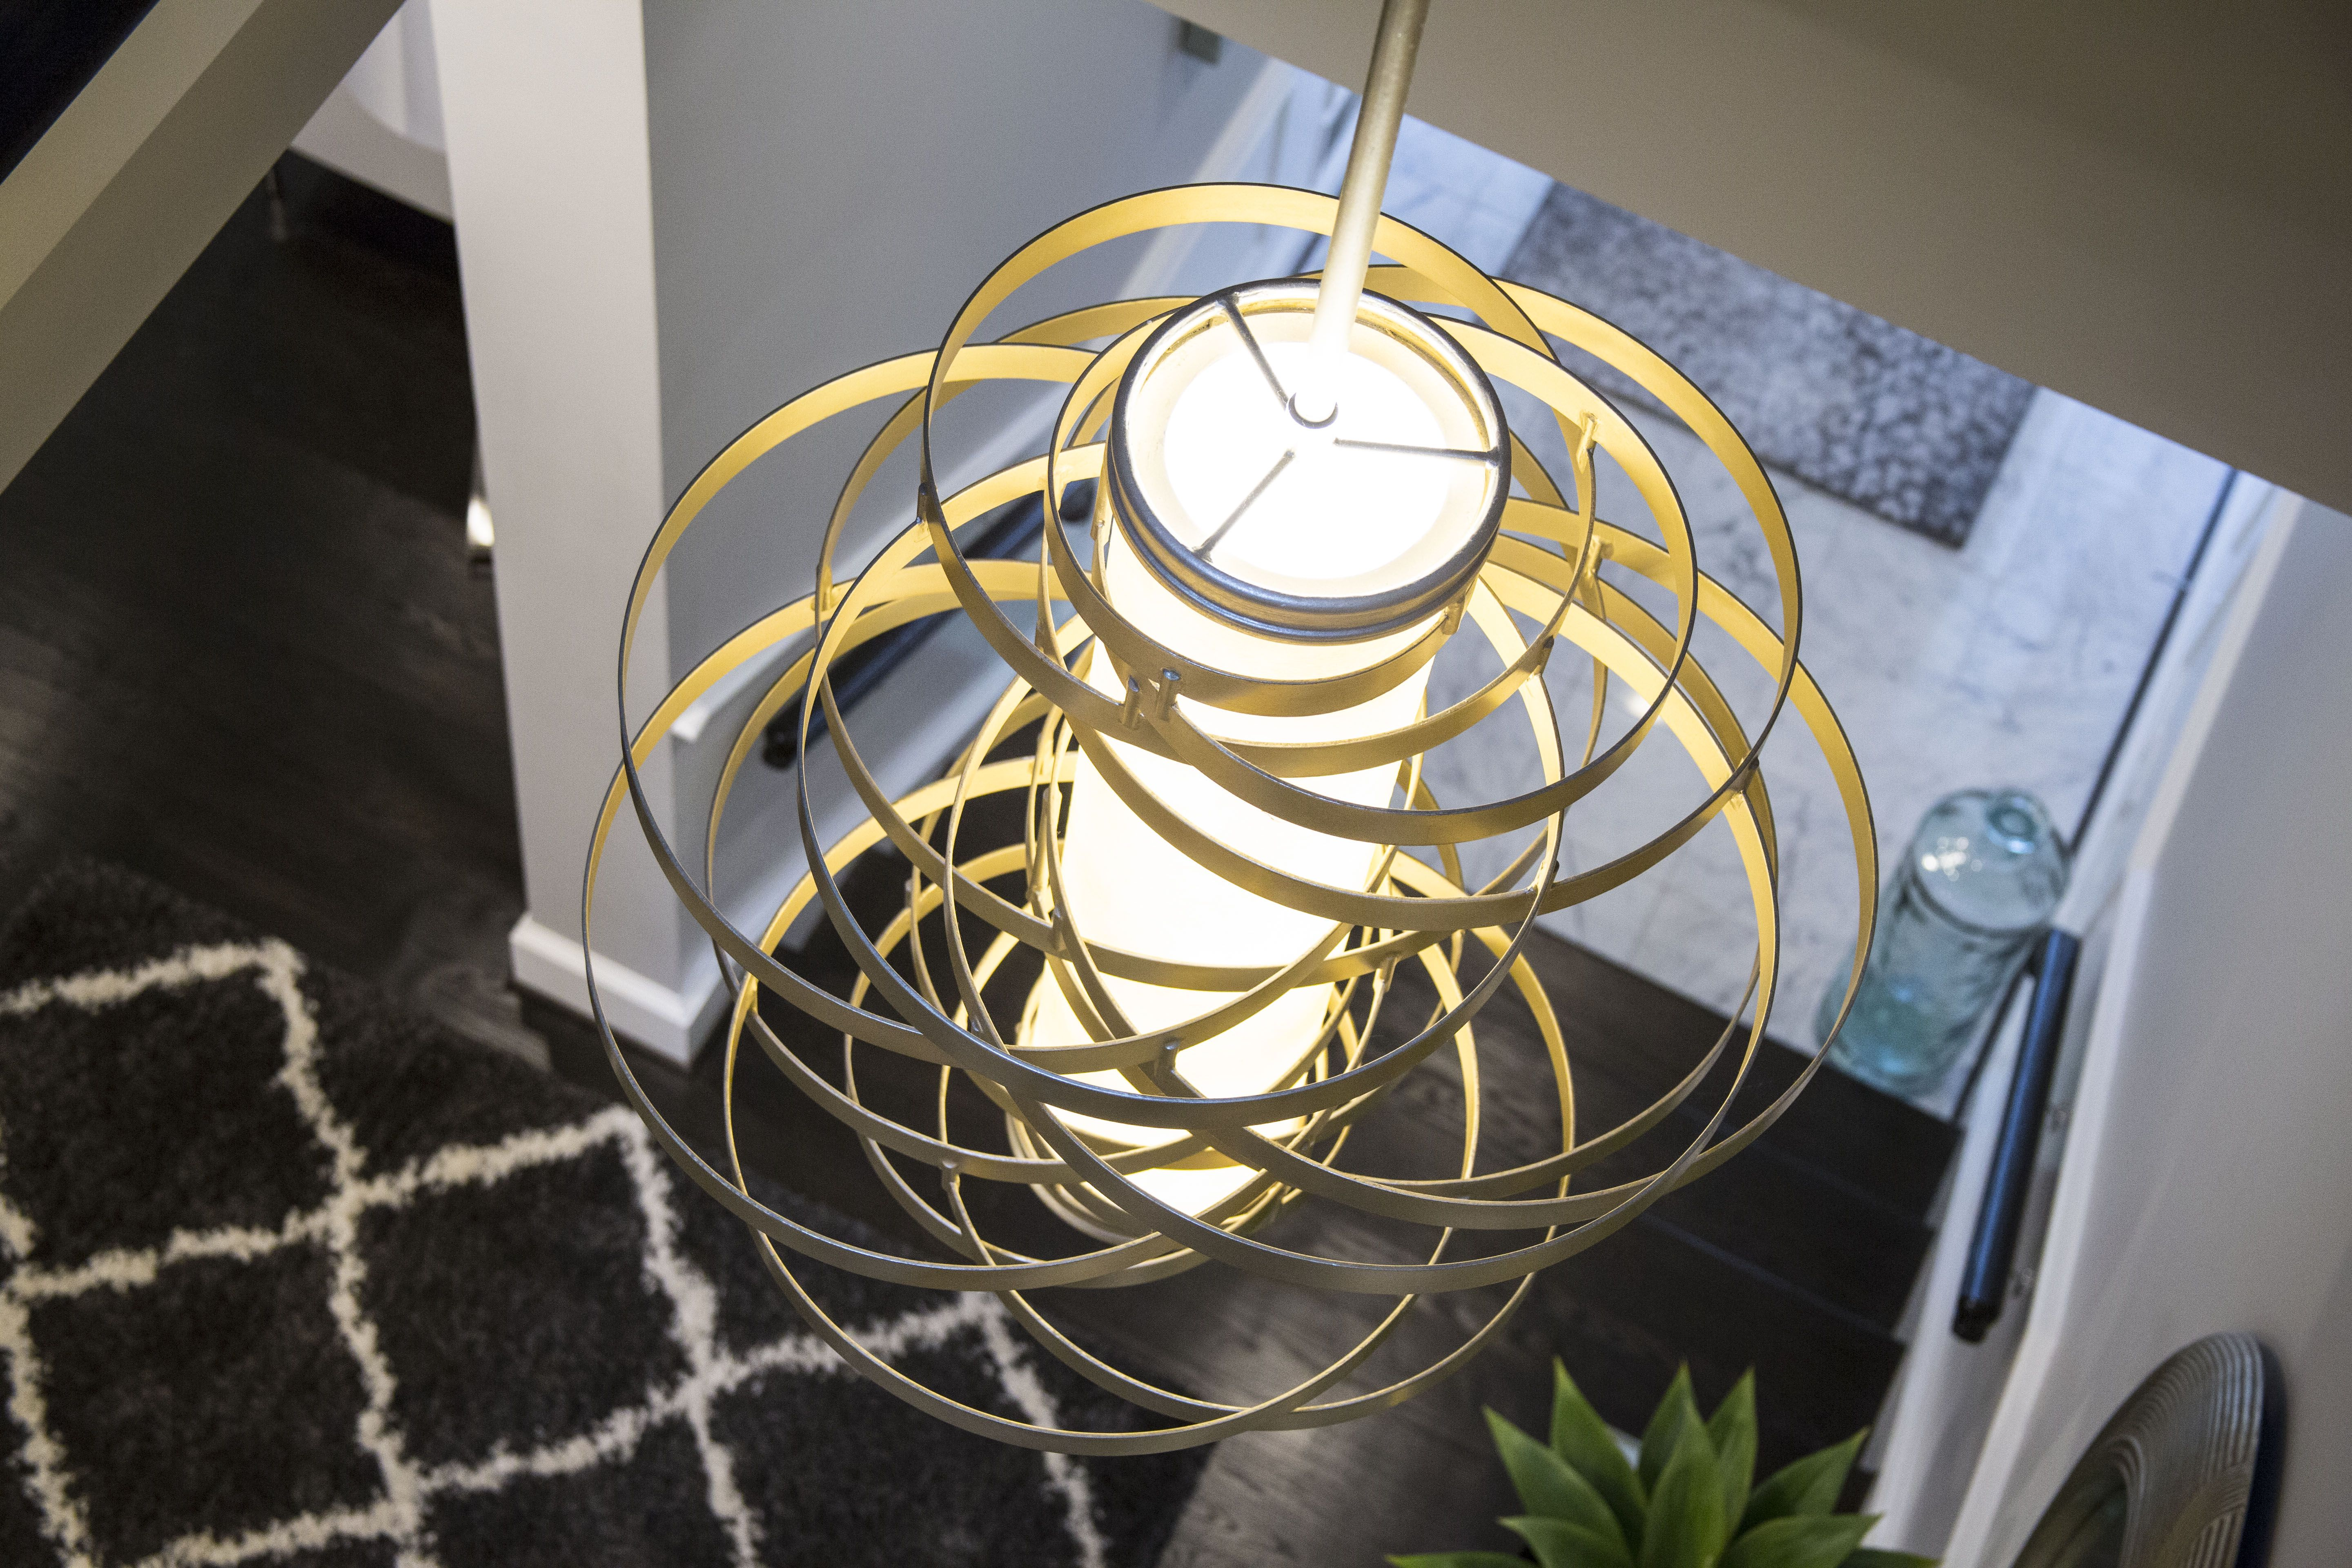 Lighting Design By Antonella Bonvicini In Our Arlington Lighting Showroom Home In Arlington Commercial Lighting Electrical Projects Lighting Showroom